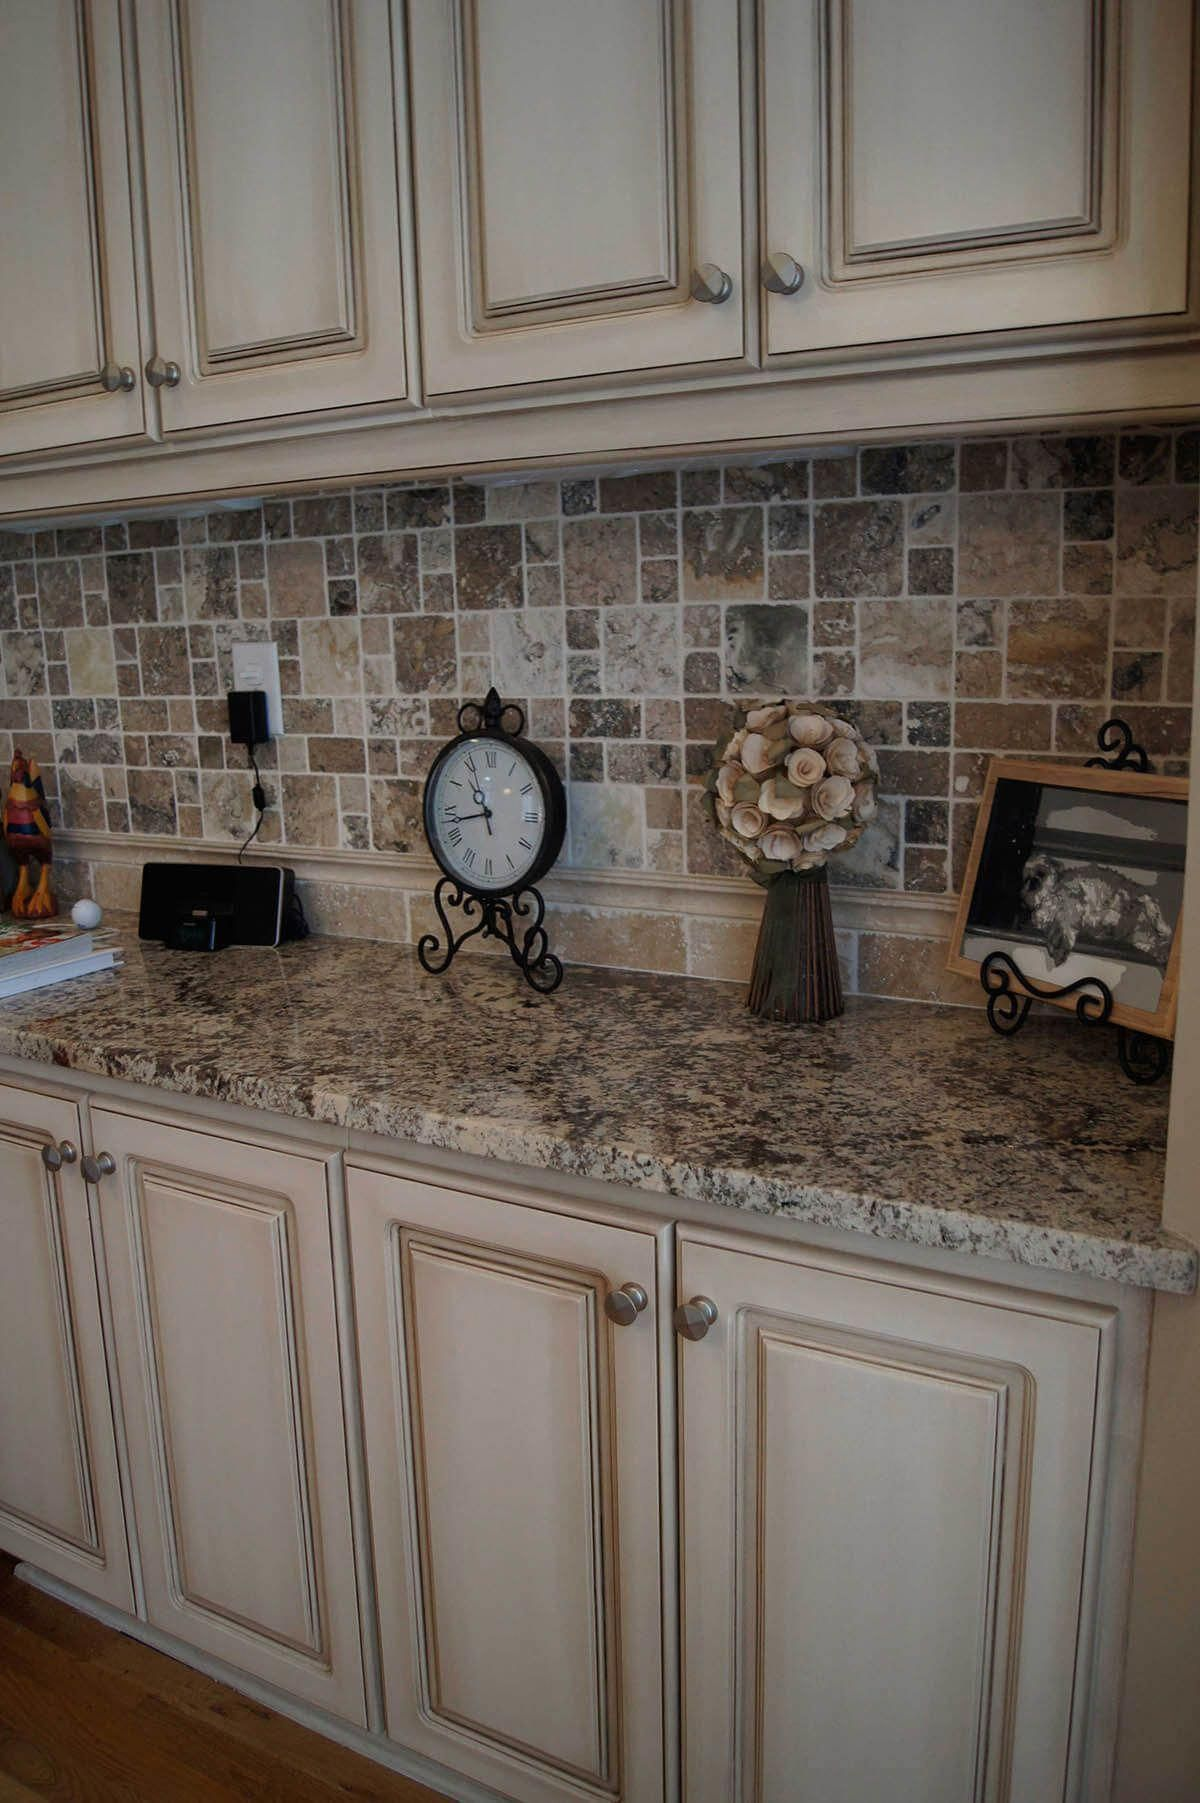 Spring Eggshell Rustic Kitchen Cabinet I Would Like This Color For My Cabinets And Island In Rustic Kitchen Cabinets Kitchen Cabinets Makeover Kitchen Remodel